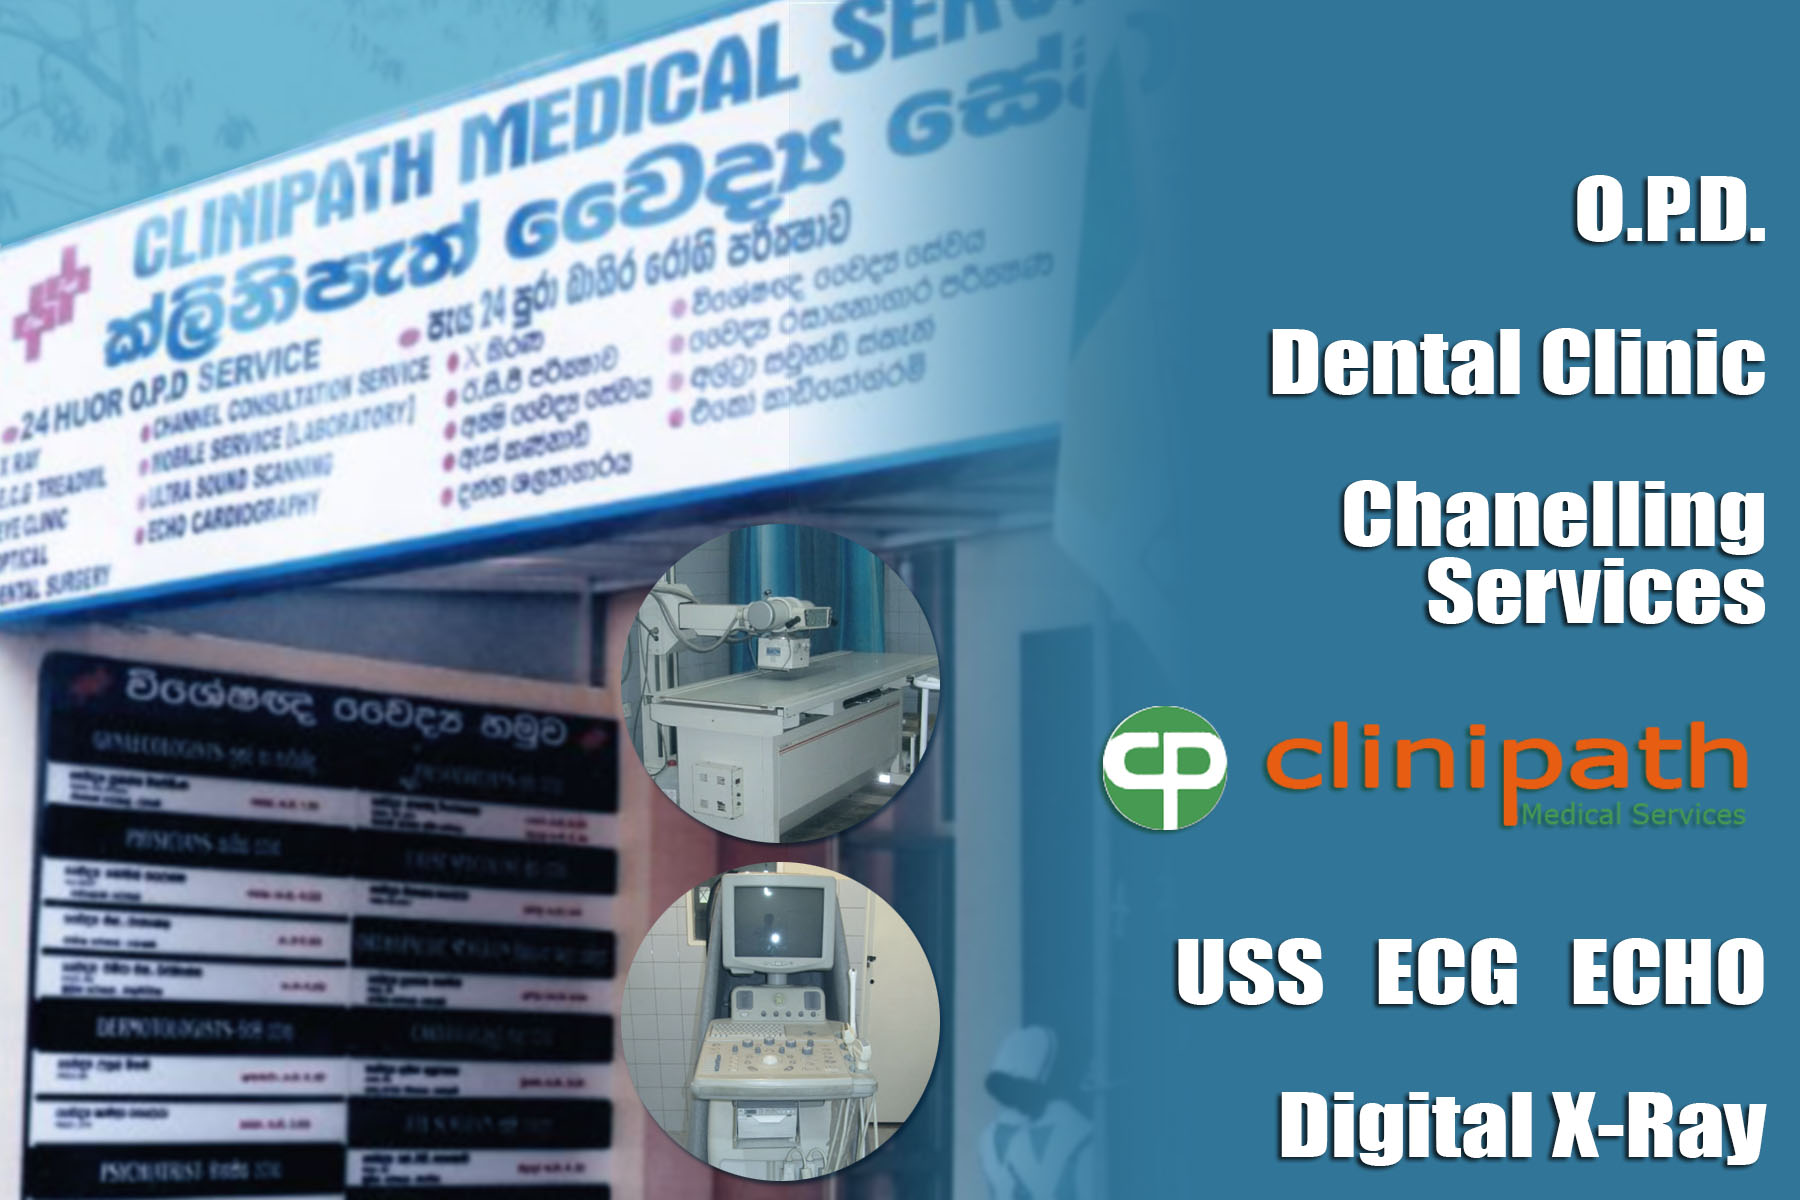 Clinipath Medical Services